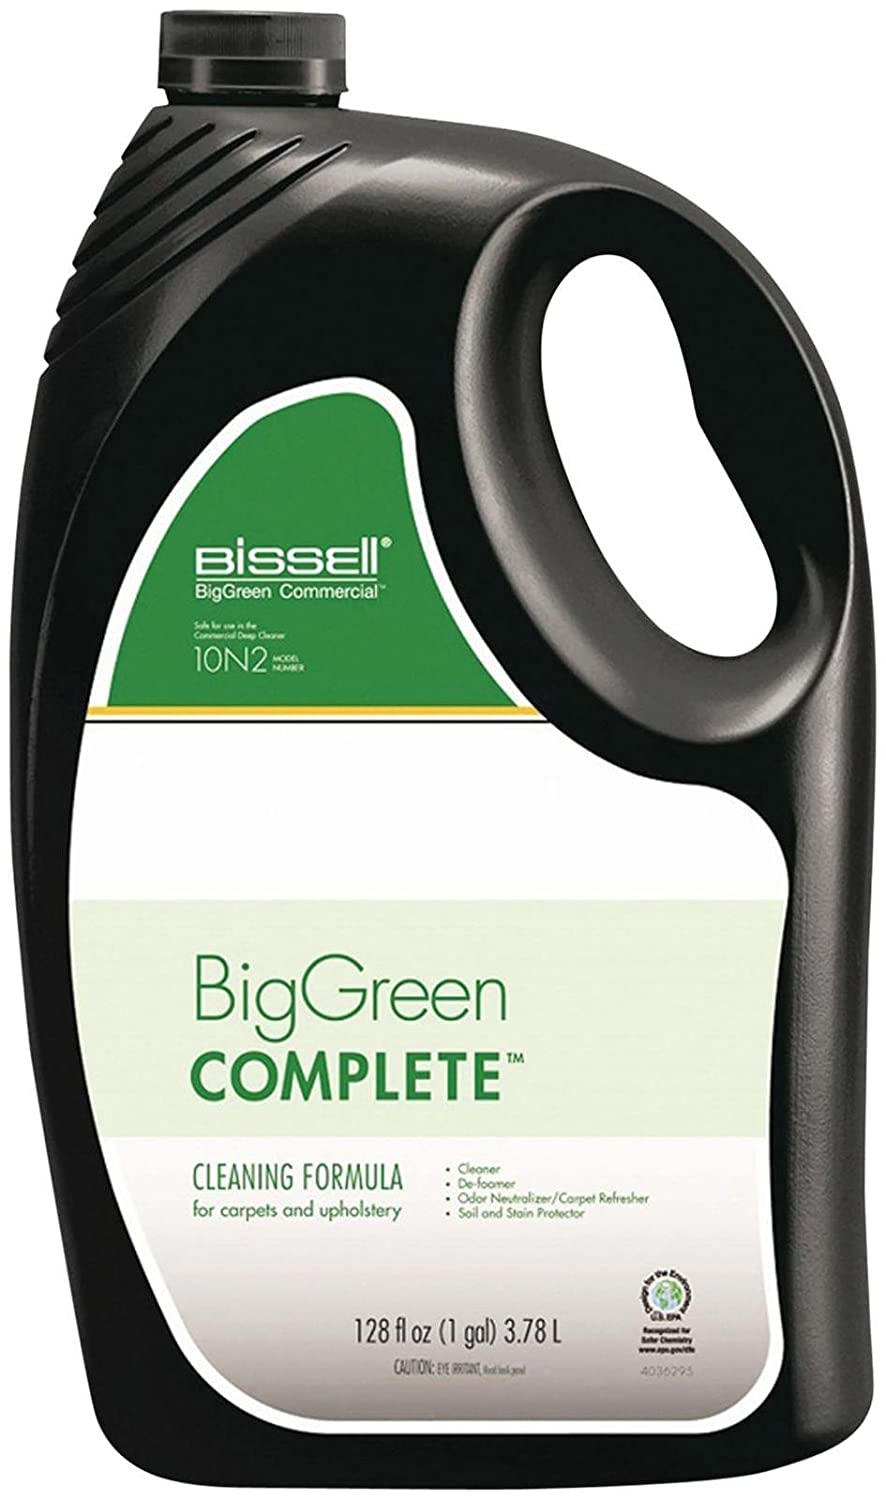 Bissell BigGreen Commercial 128oz Complete Formula Cleaner & Defoamer